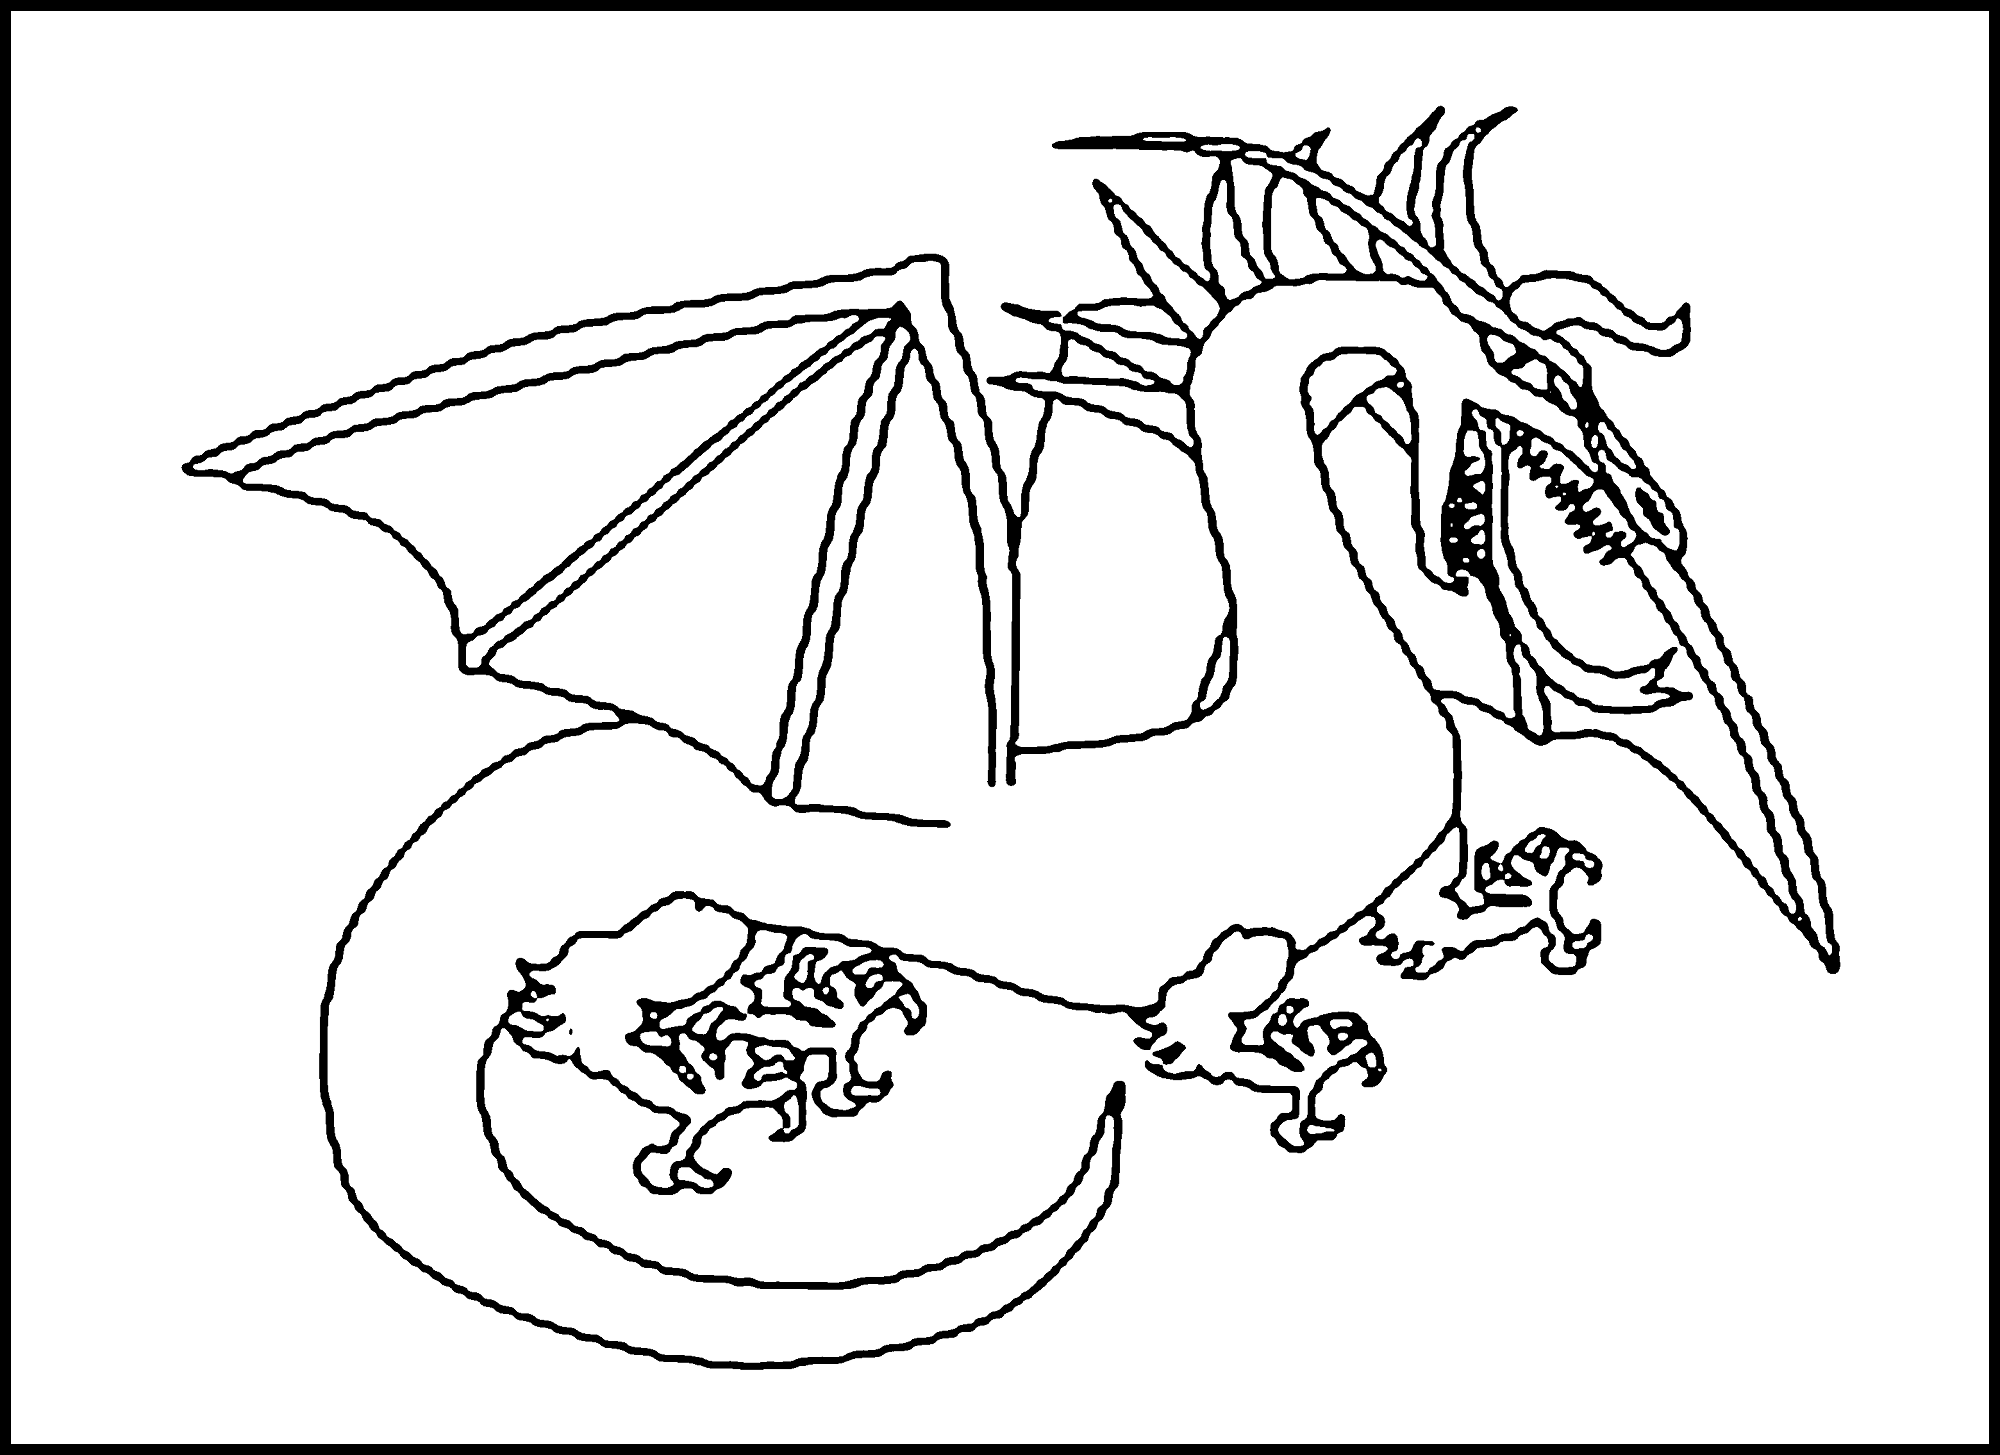 dragon coloring pages to print printable dragon coloring pages for kids cool2bkids print to coloring pages dragon